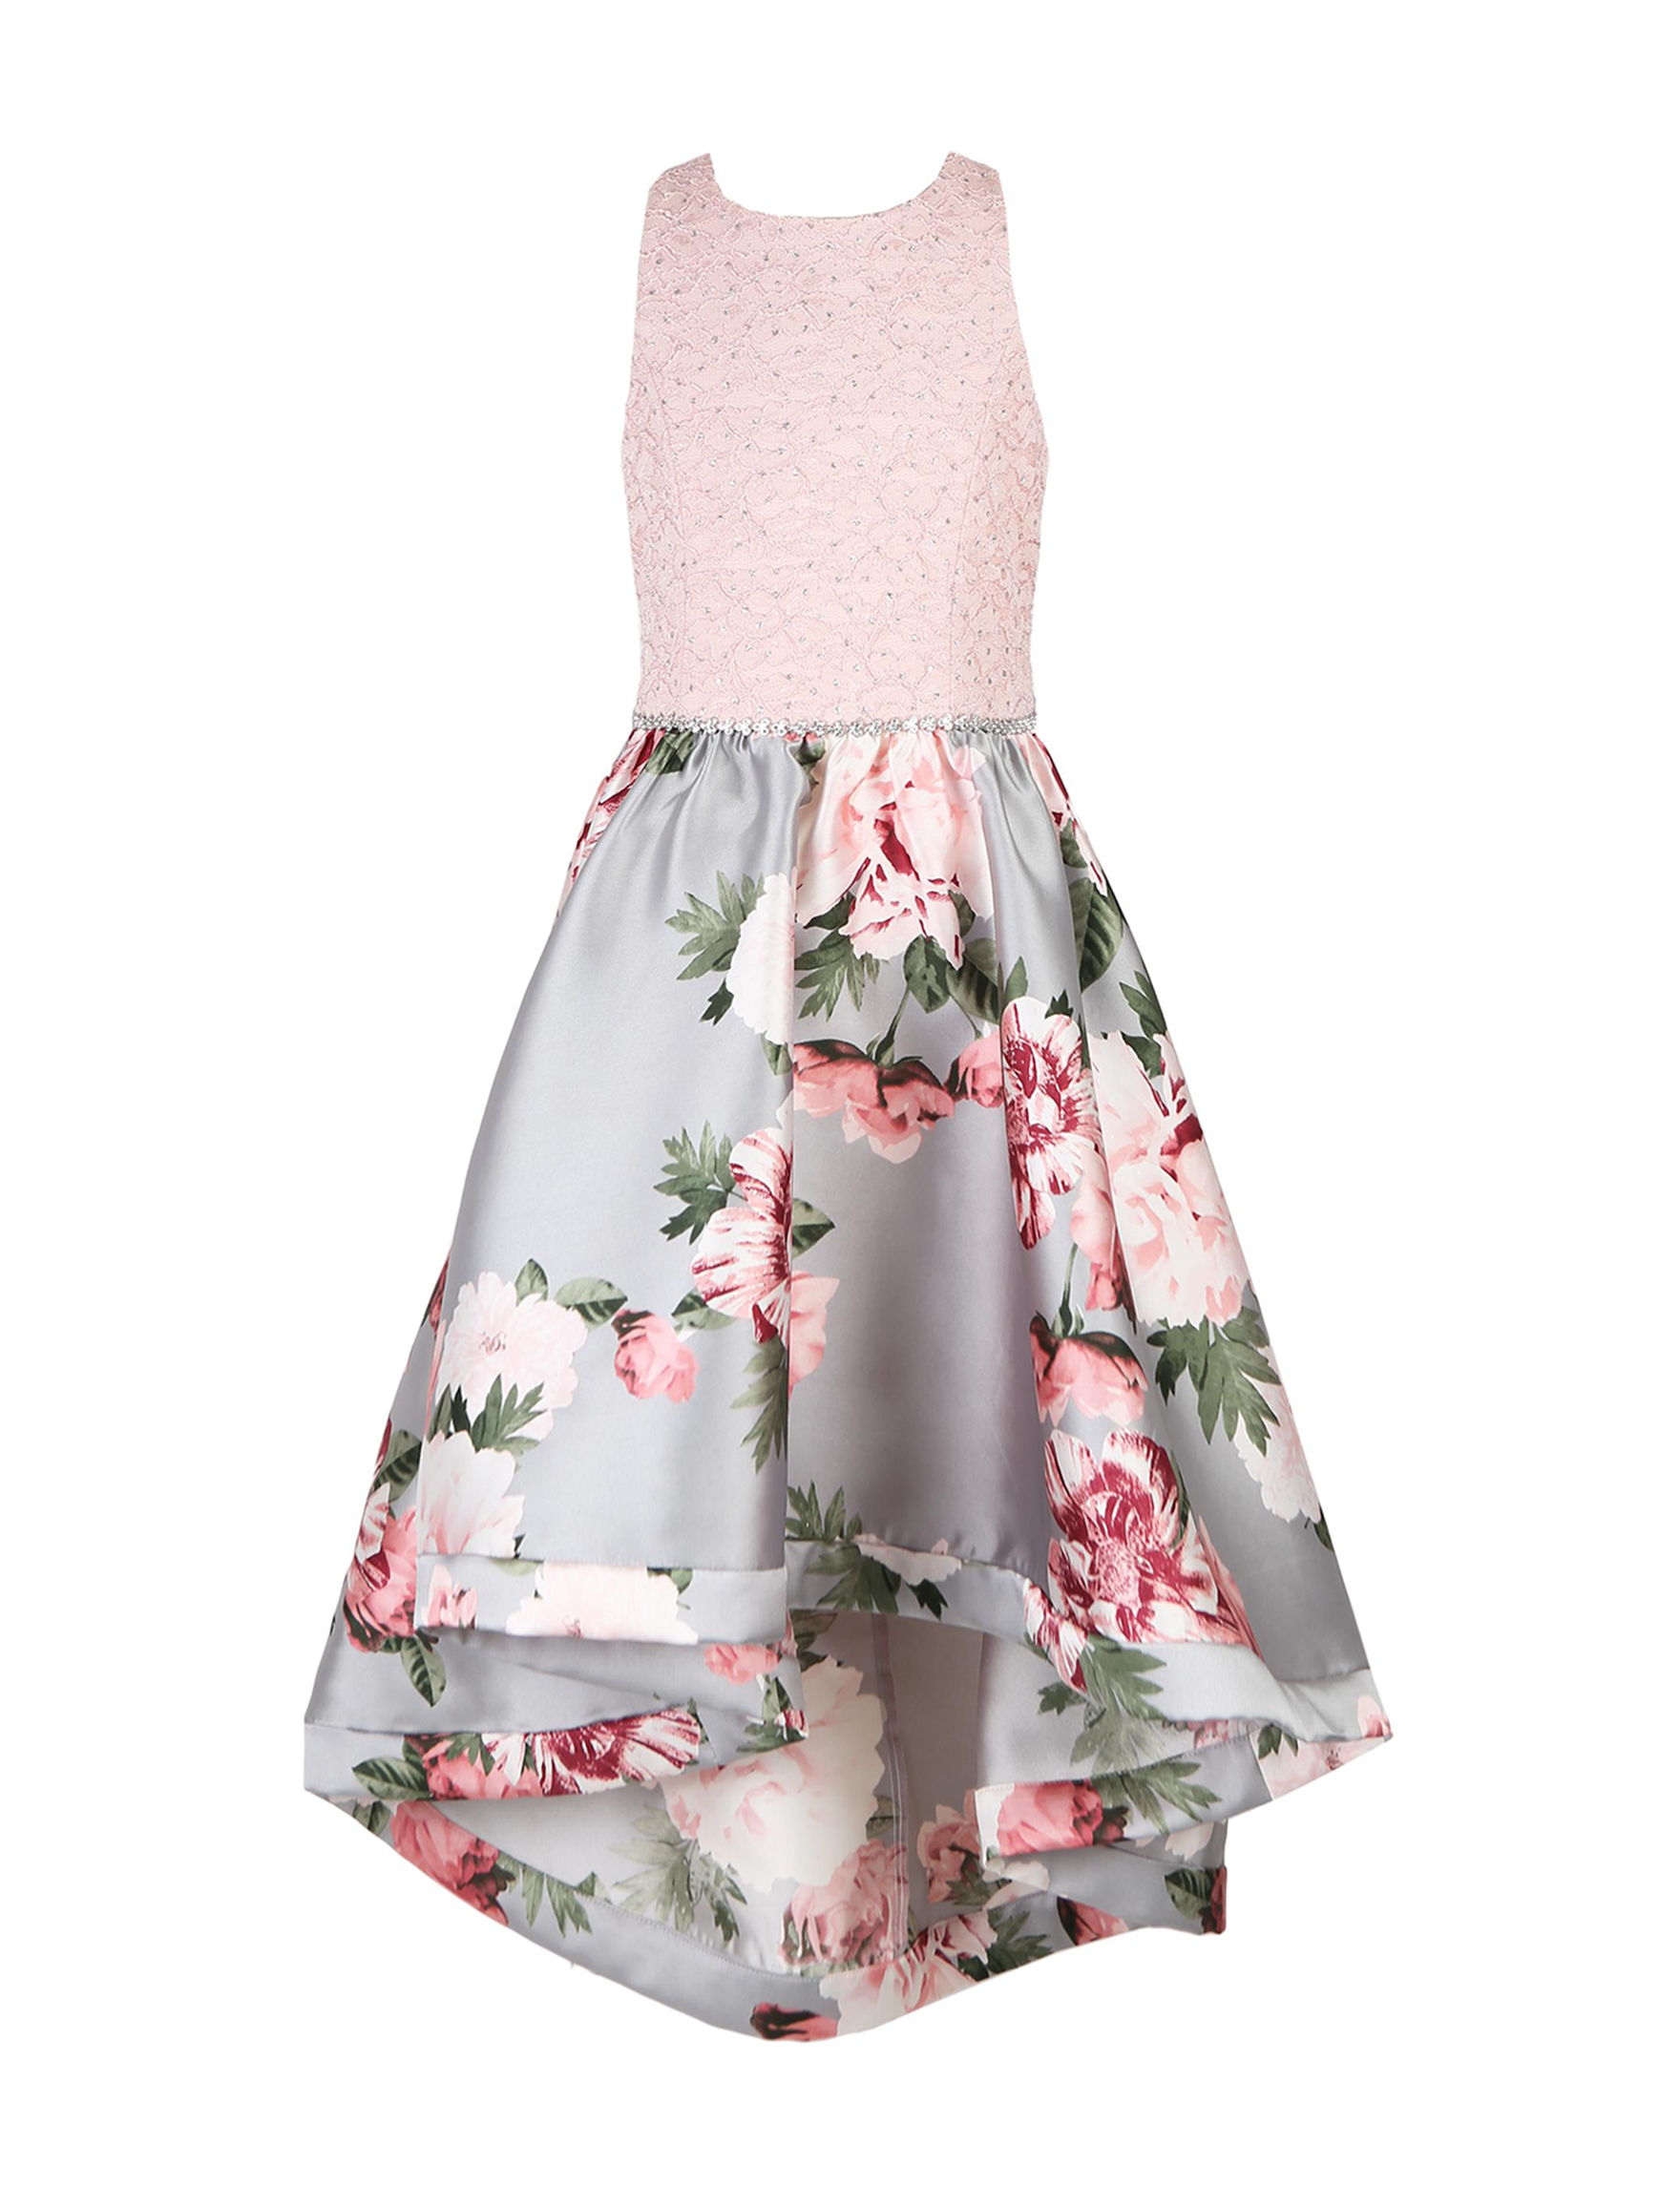 be198c02f6c6c Speechless Lace Floral High-Low Dress - Girls 7-16 | Stage Stores